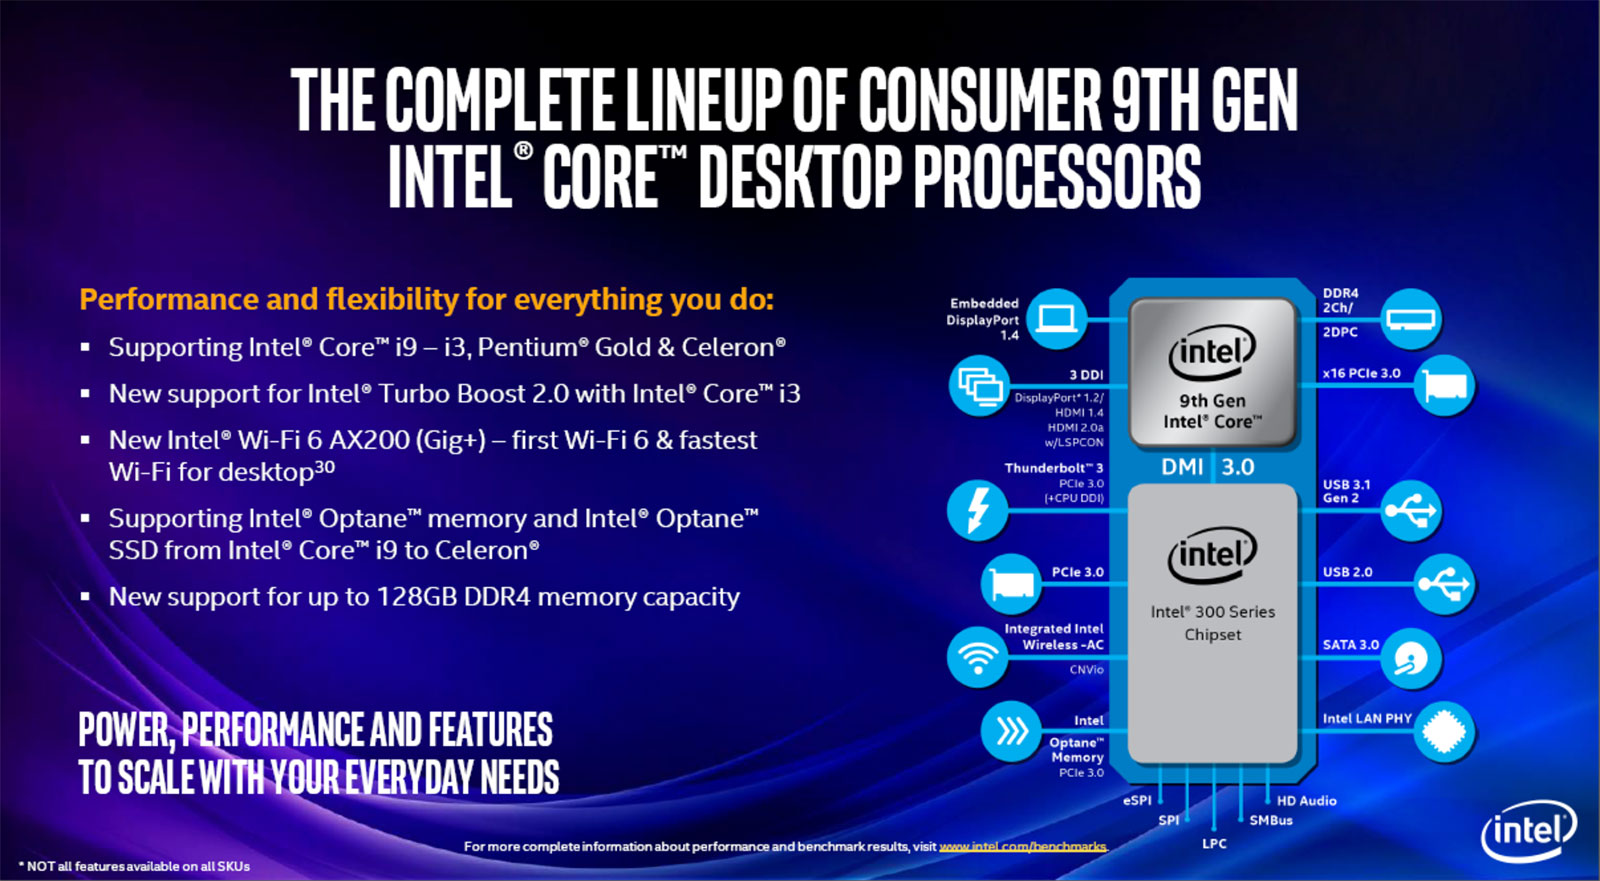 Intel Launches New 9th Gen Mobile CPUs Punctuated By 8-Core Chips, WiFi 6 And A Desktop Refresh